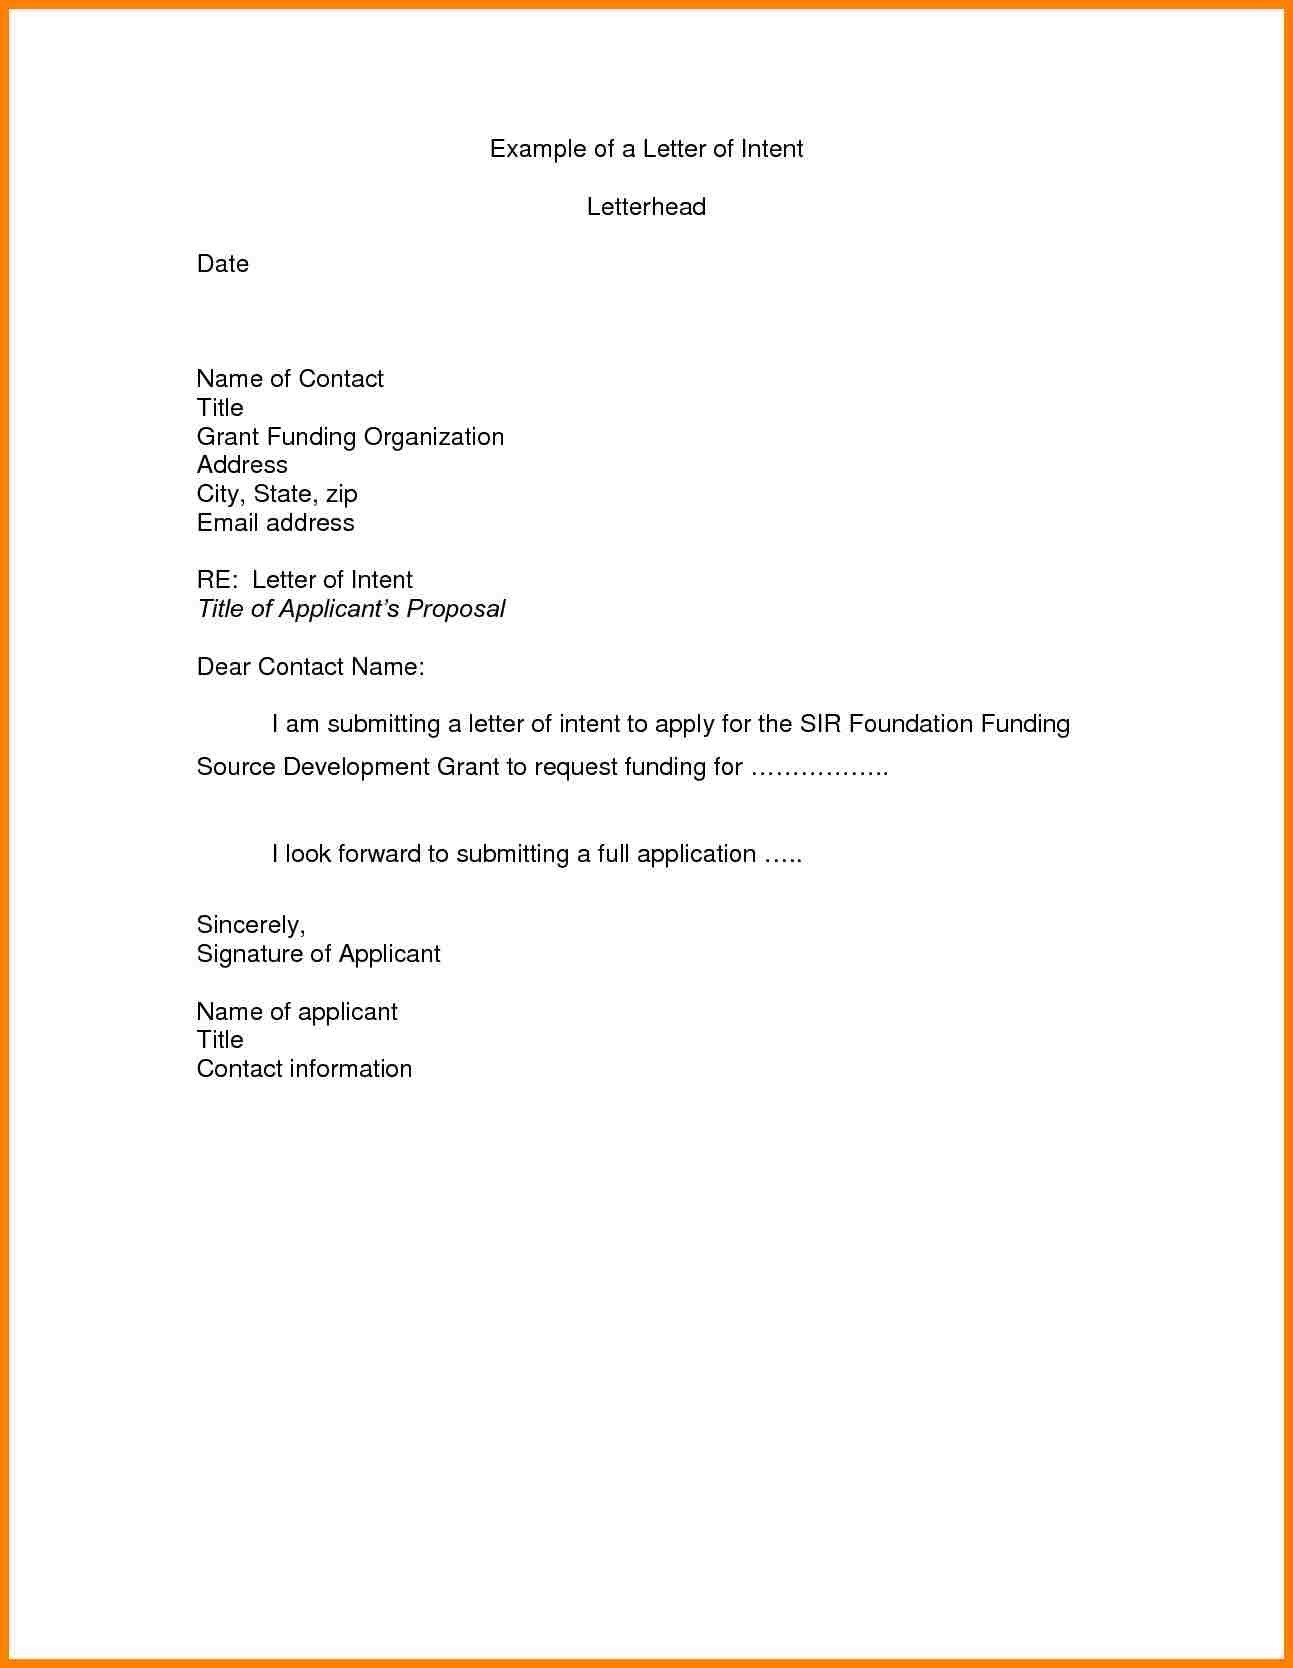 Offer Of Employment Letter Template Canada - Letter Intent Job Template New Letter Intent Job Sample Fresh